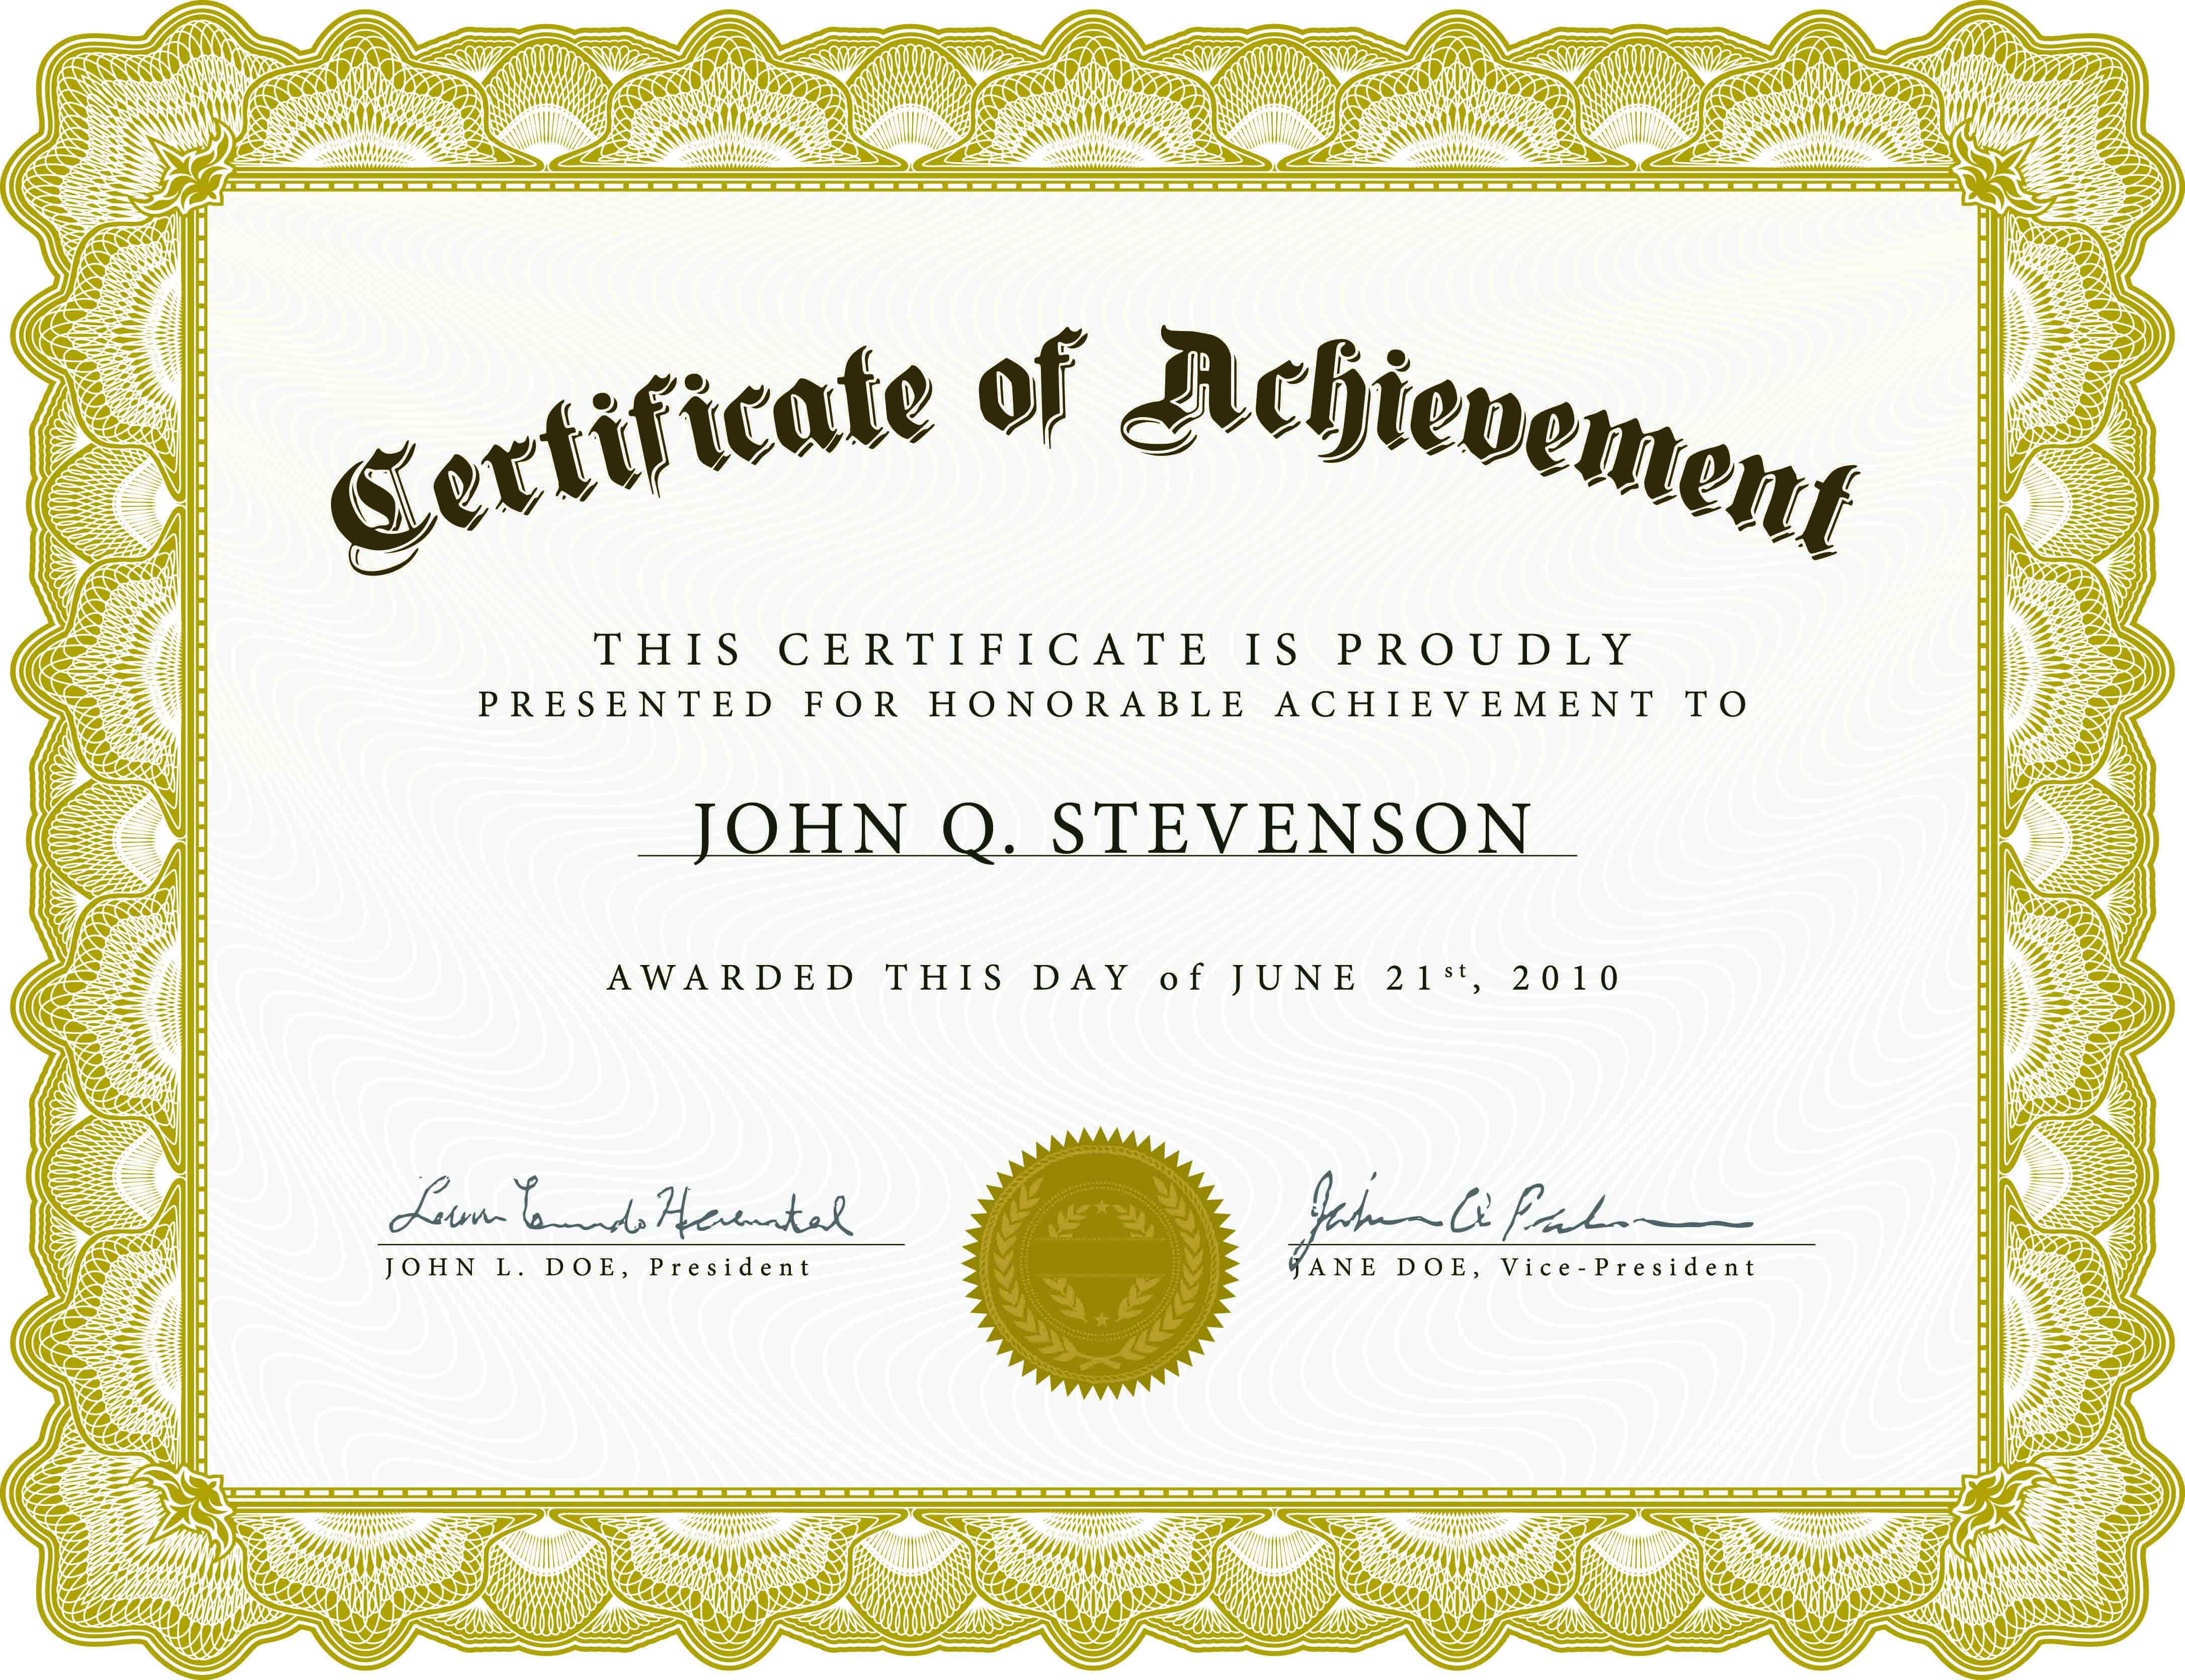 Download Blank Certificate Template X3Hr9Dto | St. Gabriel's Youth - Free Printable Blank Certificates Of Achievement